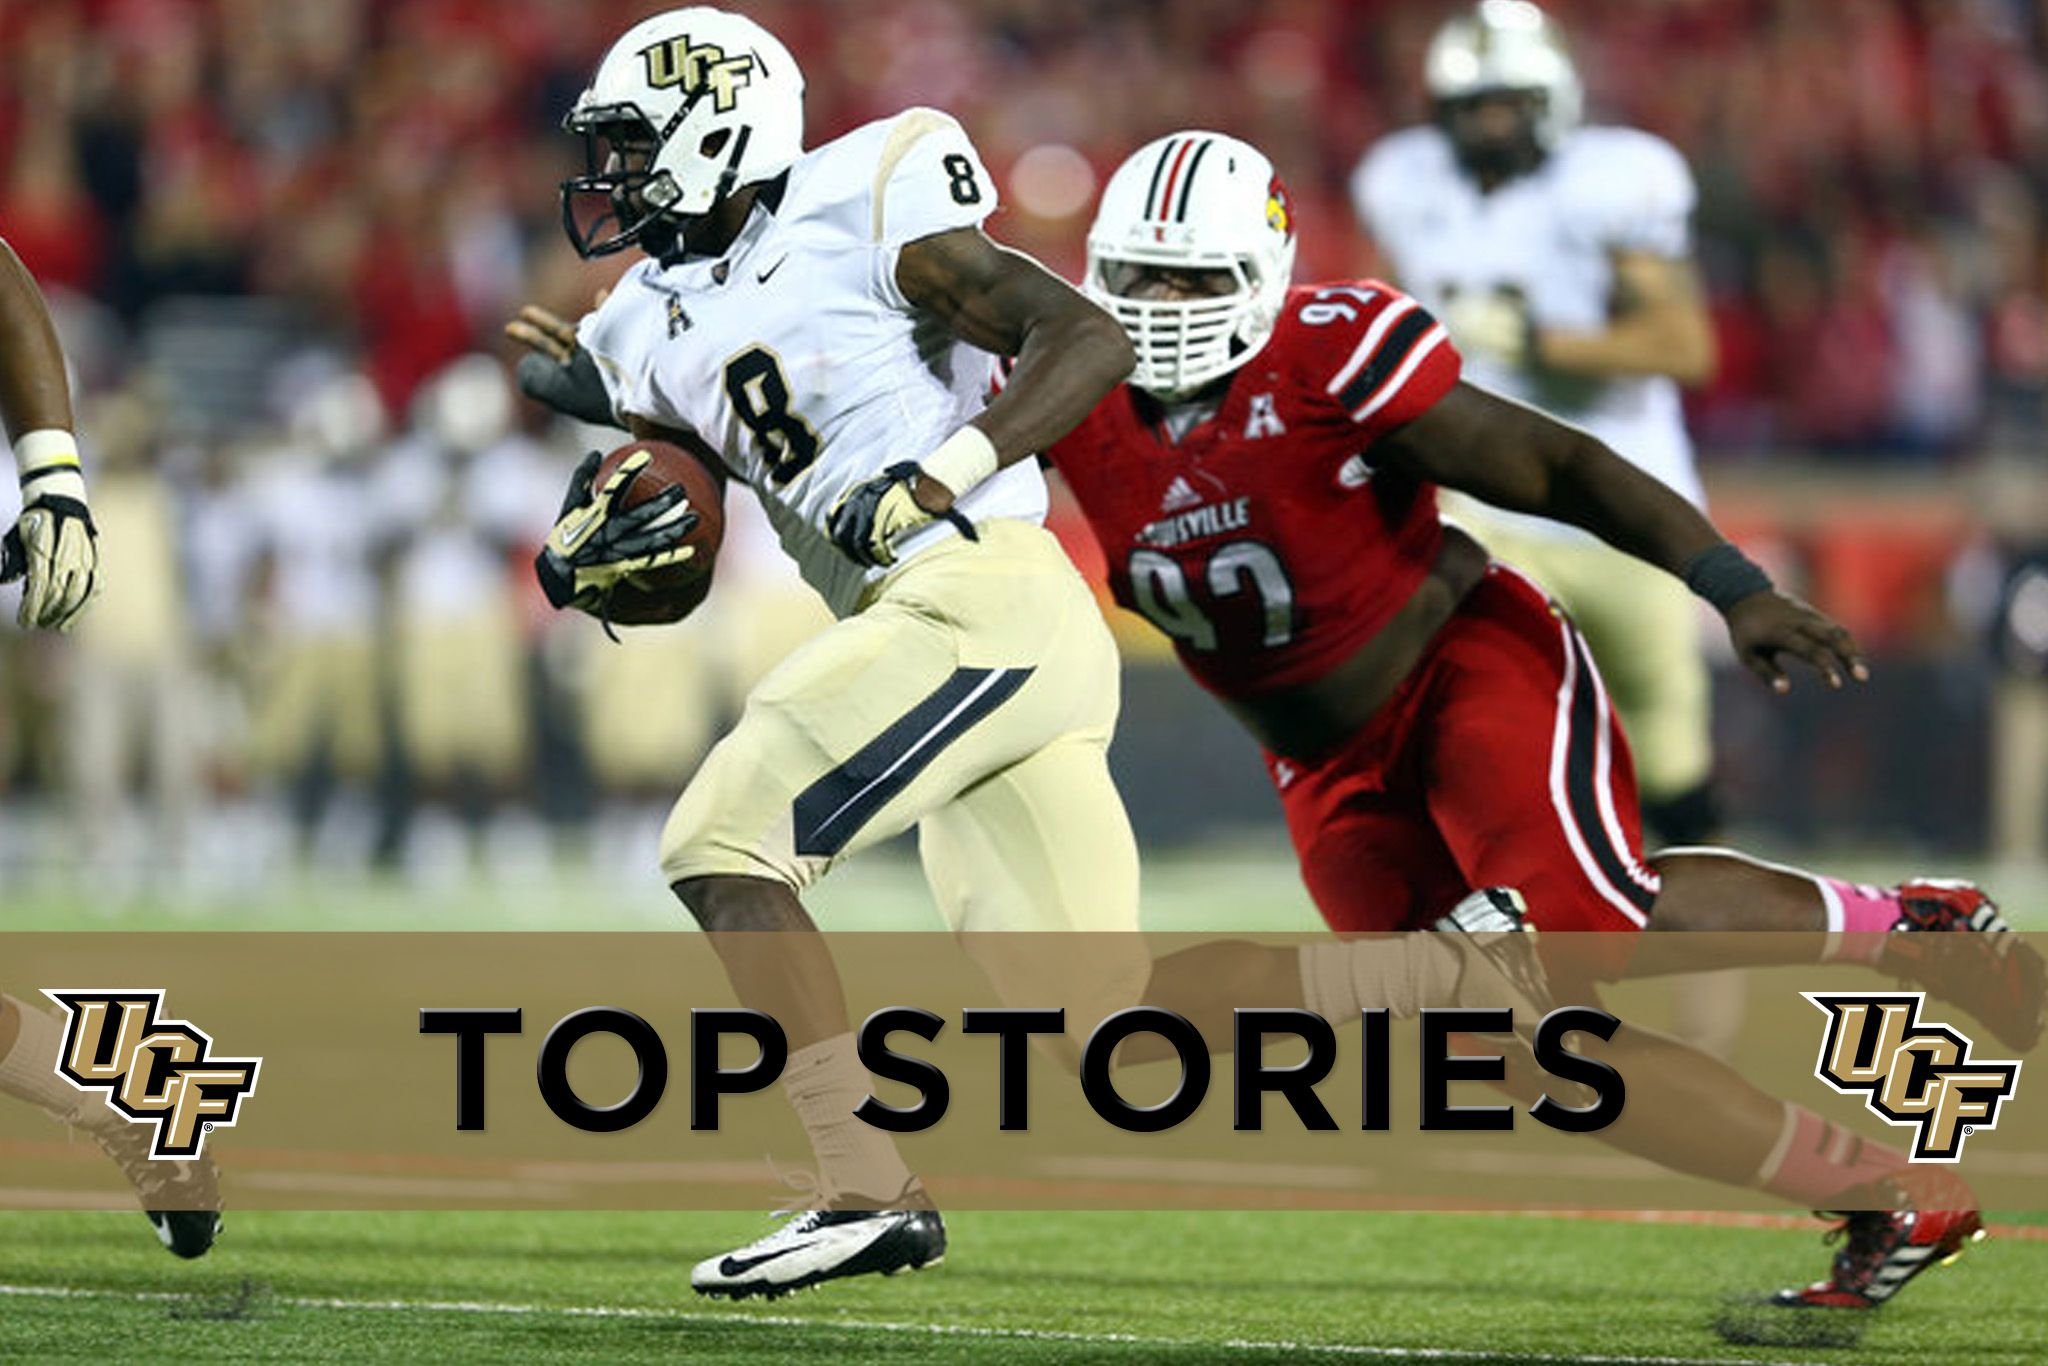 Top Stories Cover Speed Training Football Soccer